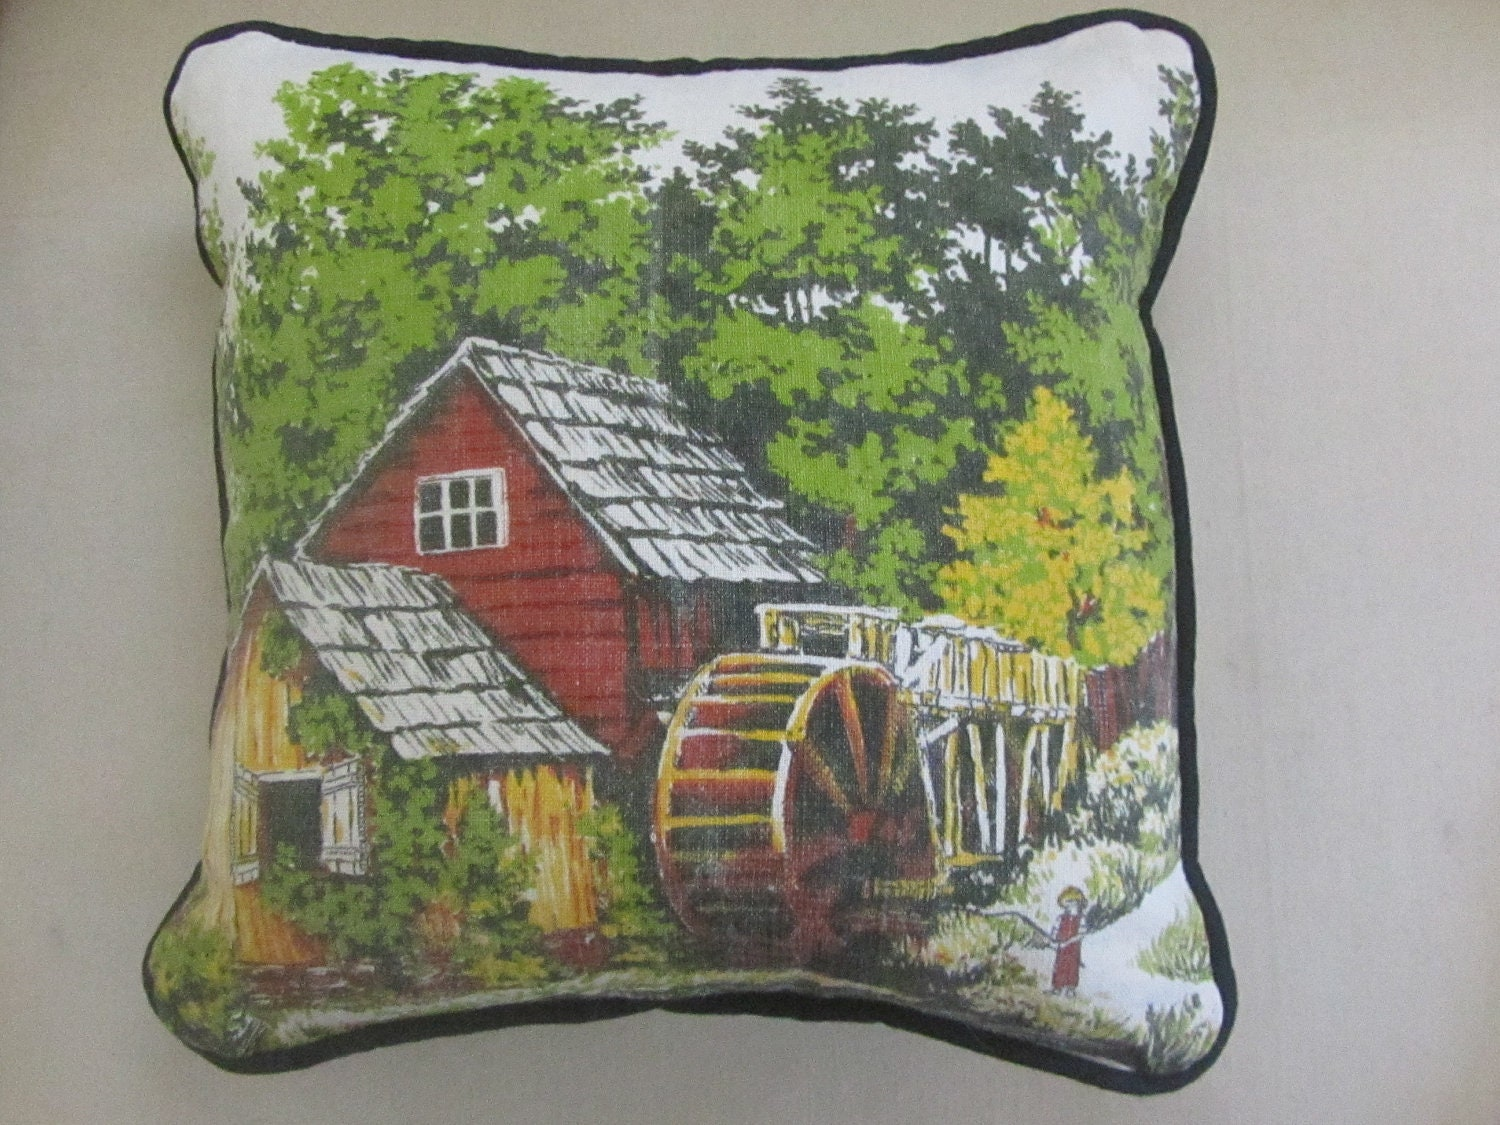 Vintage Water Wheel Mill with Barn scene calendar linen pillow- Fall pillow, water wheel, old mill, barn, woodland pillow, country